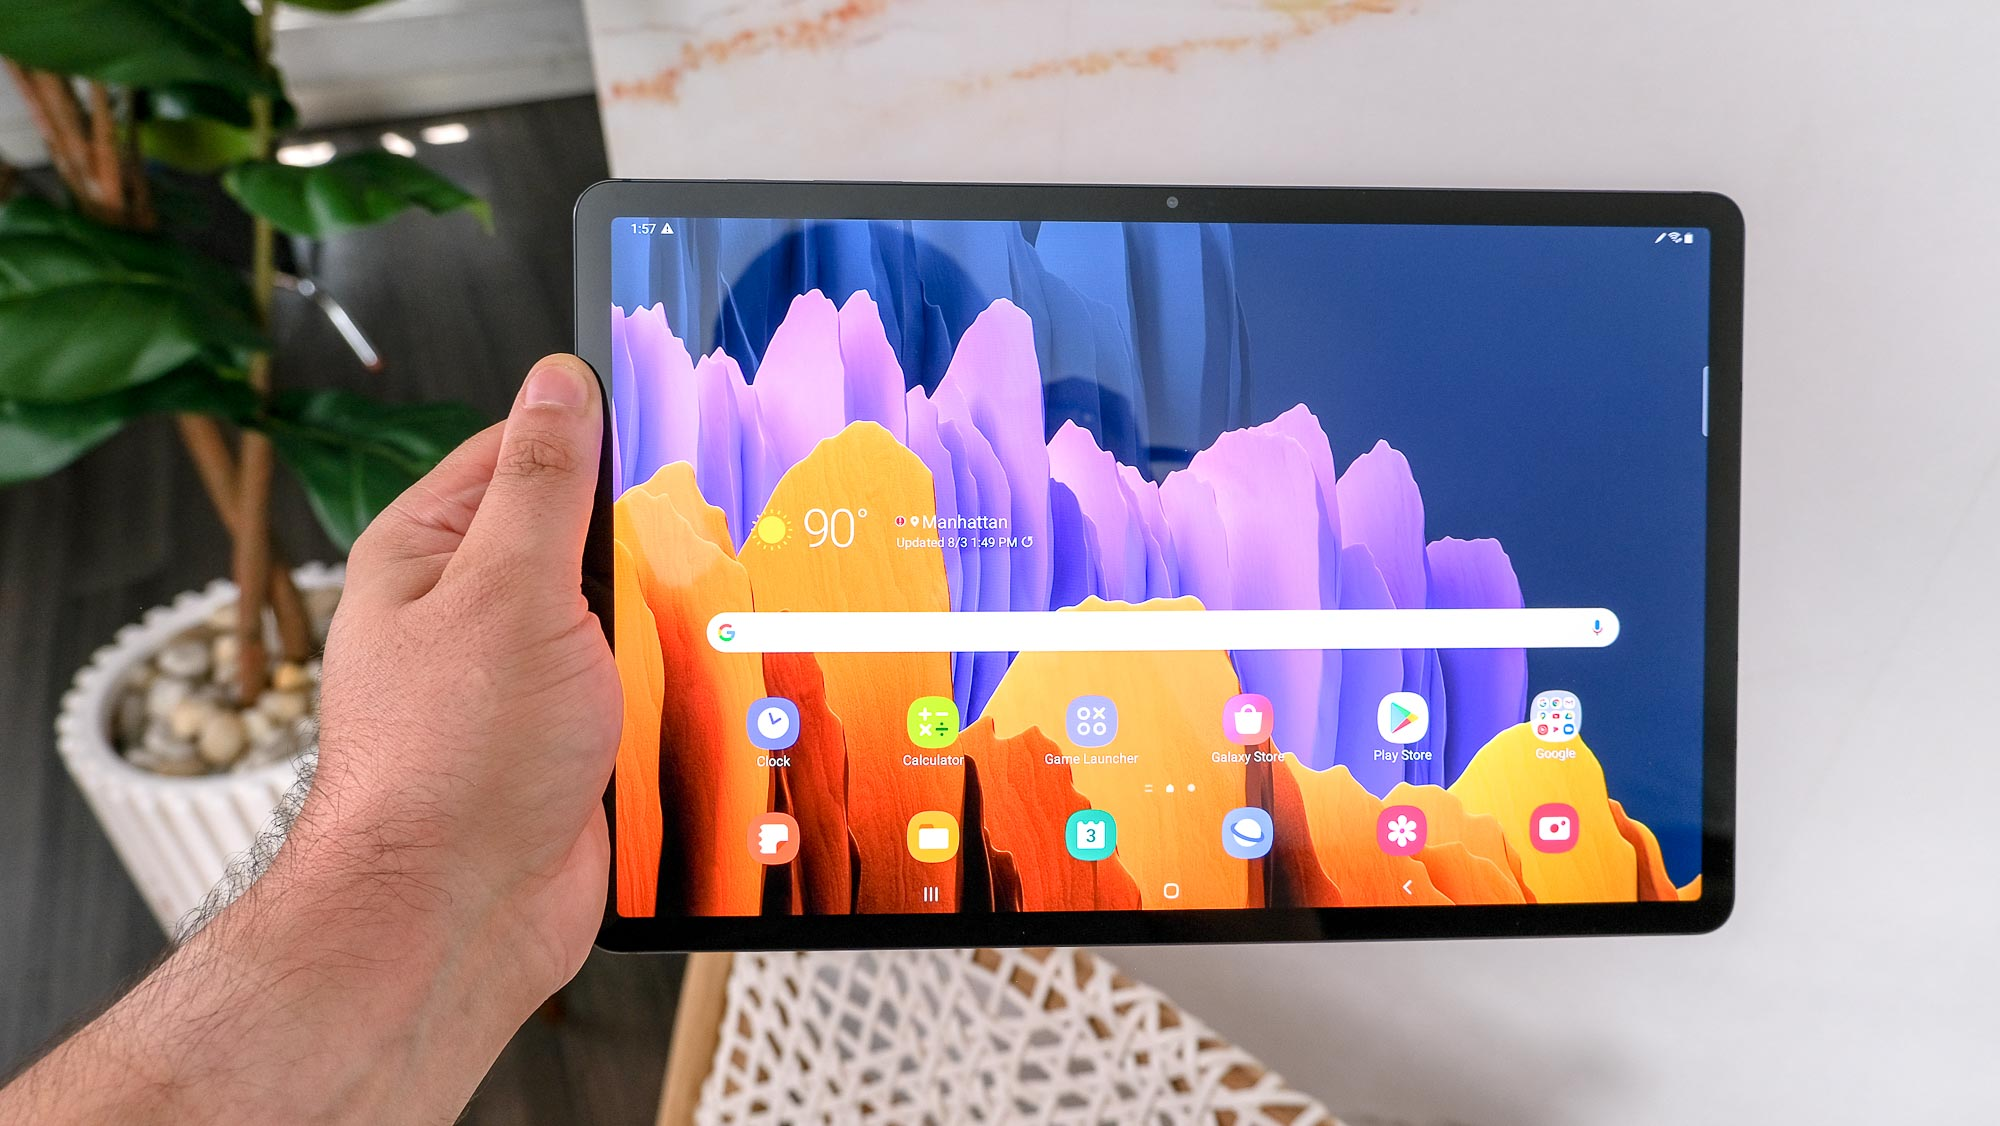 Seems as though the Galaxy Tab S8 Ultra will be incredibly elusive